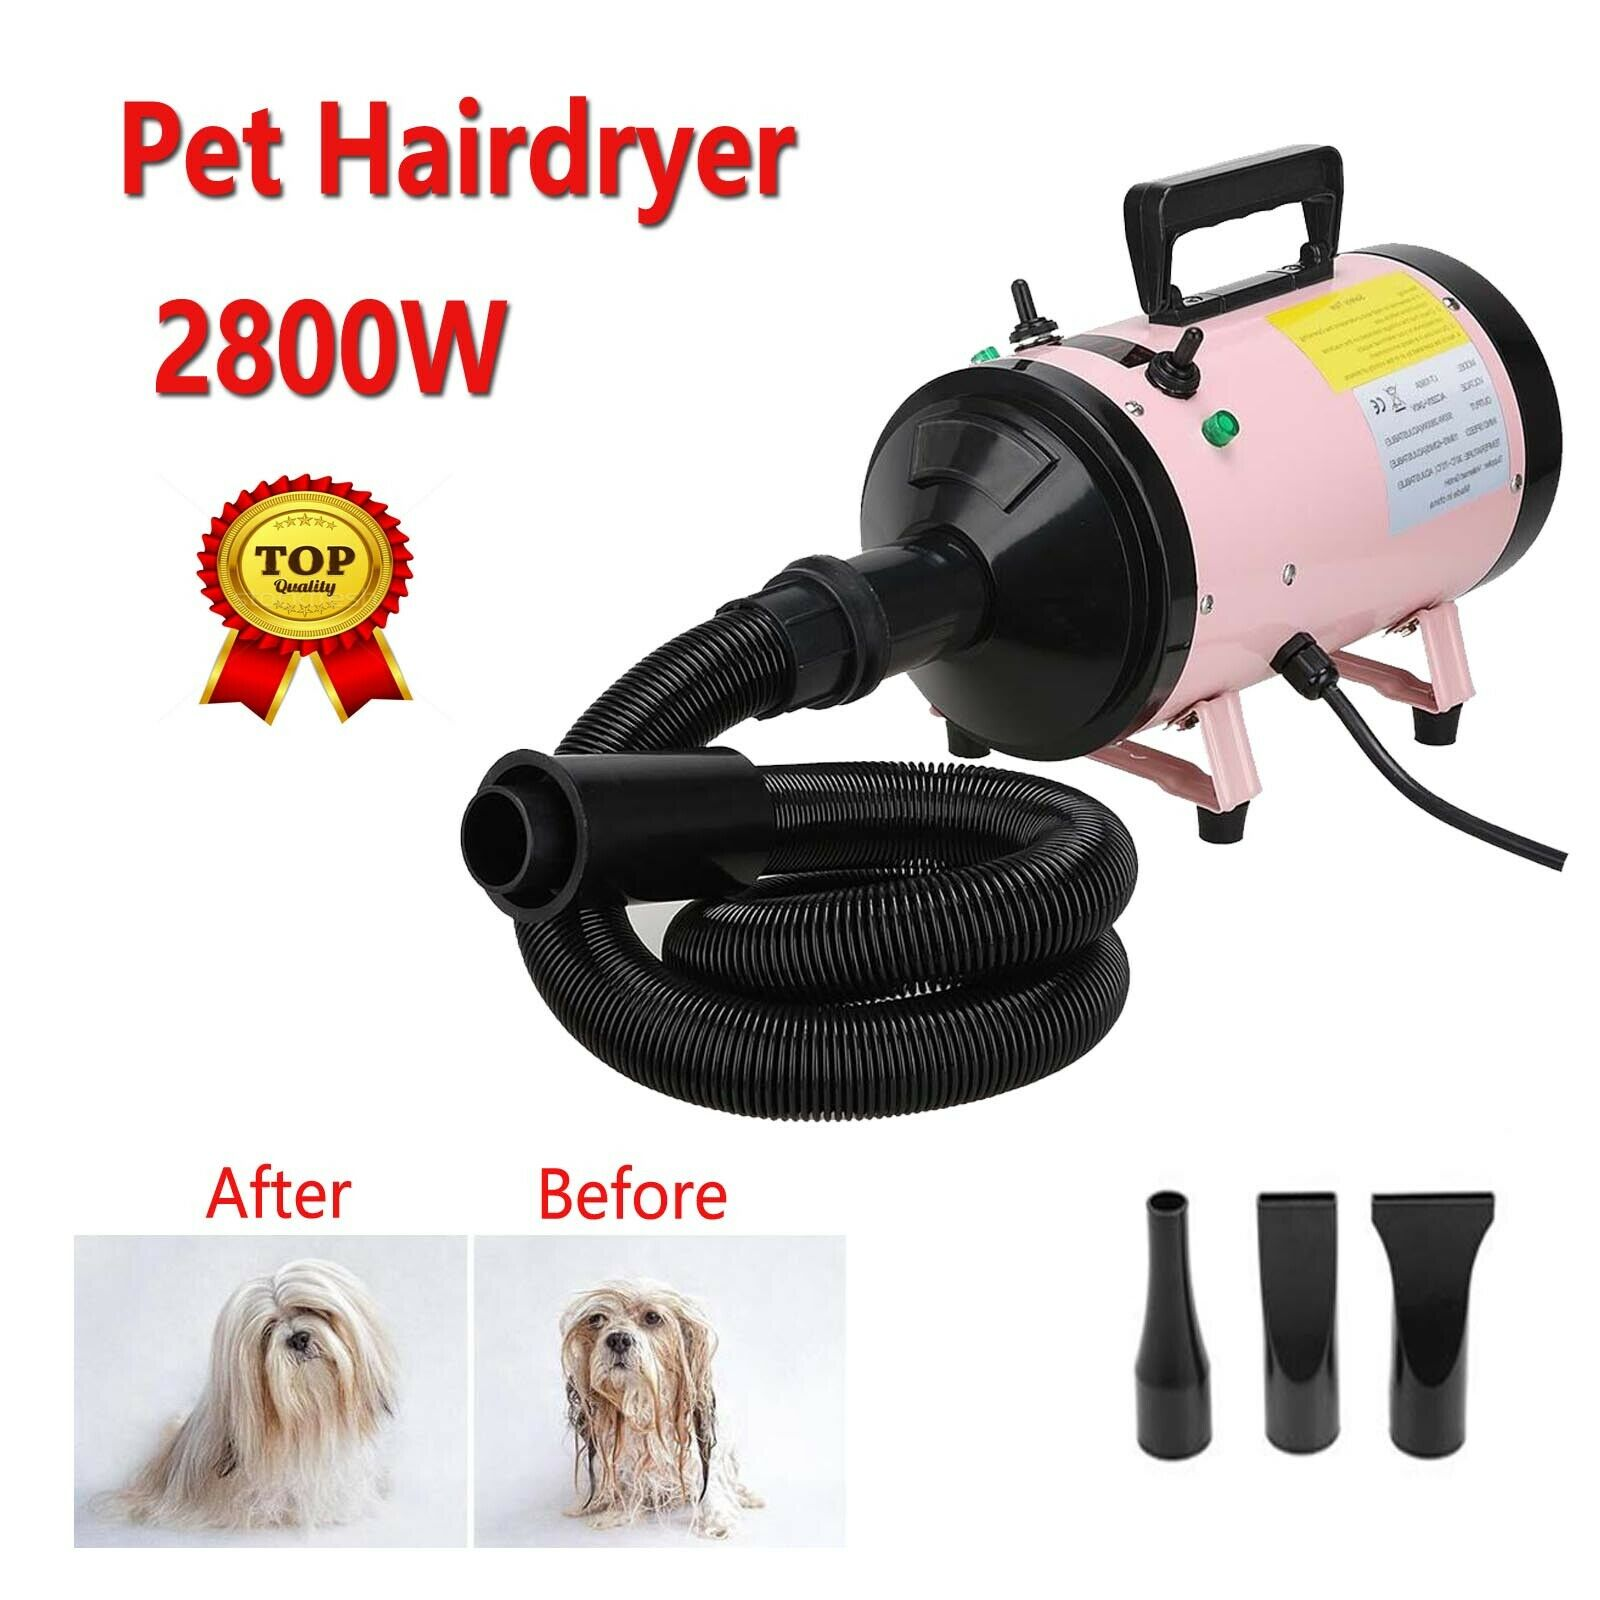 Powerful 2800W Dog Pet Grooming Hair Dryer Professional  Blaster Low Noise